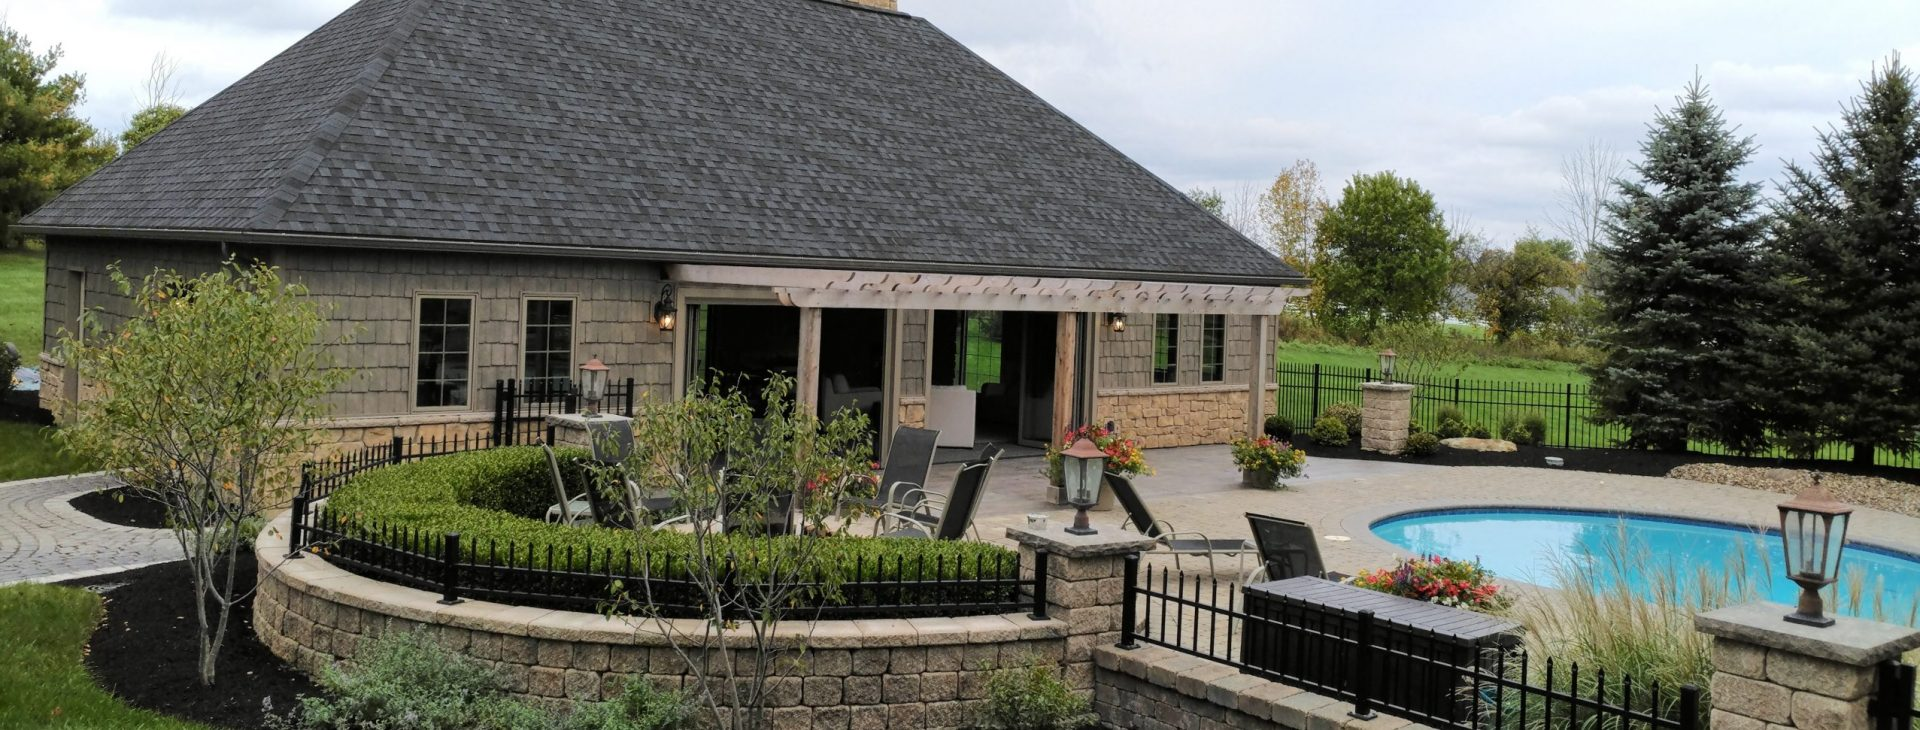 Landscaping excellence, creative solutions, quality craftsmanship.